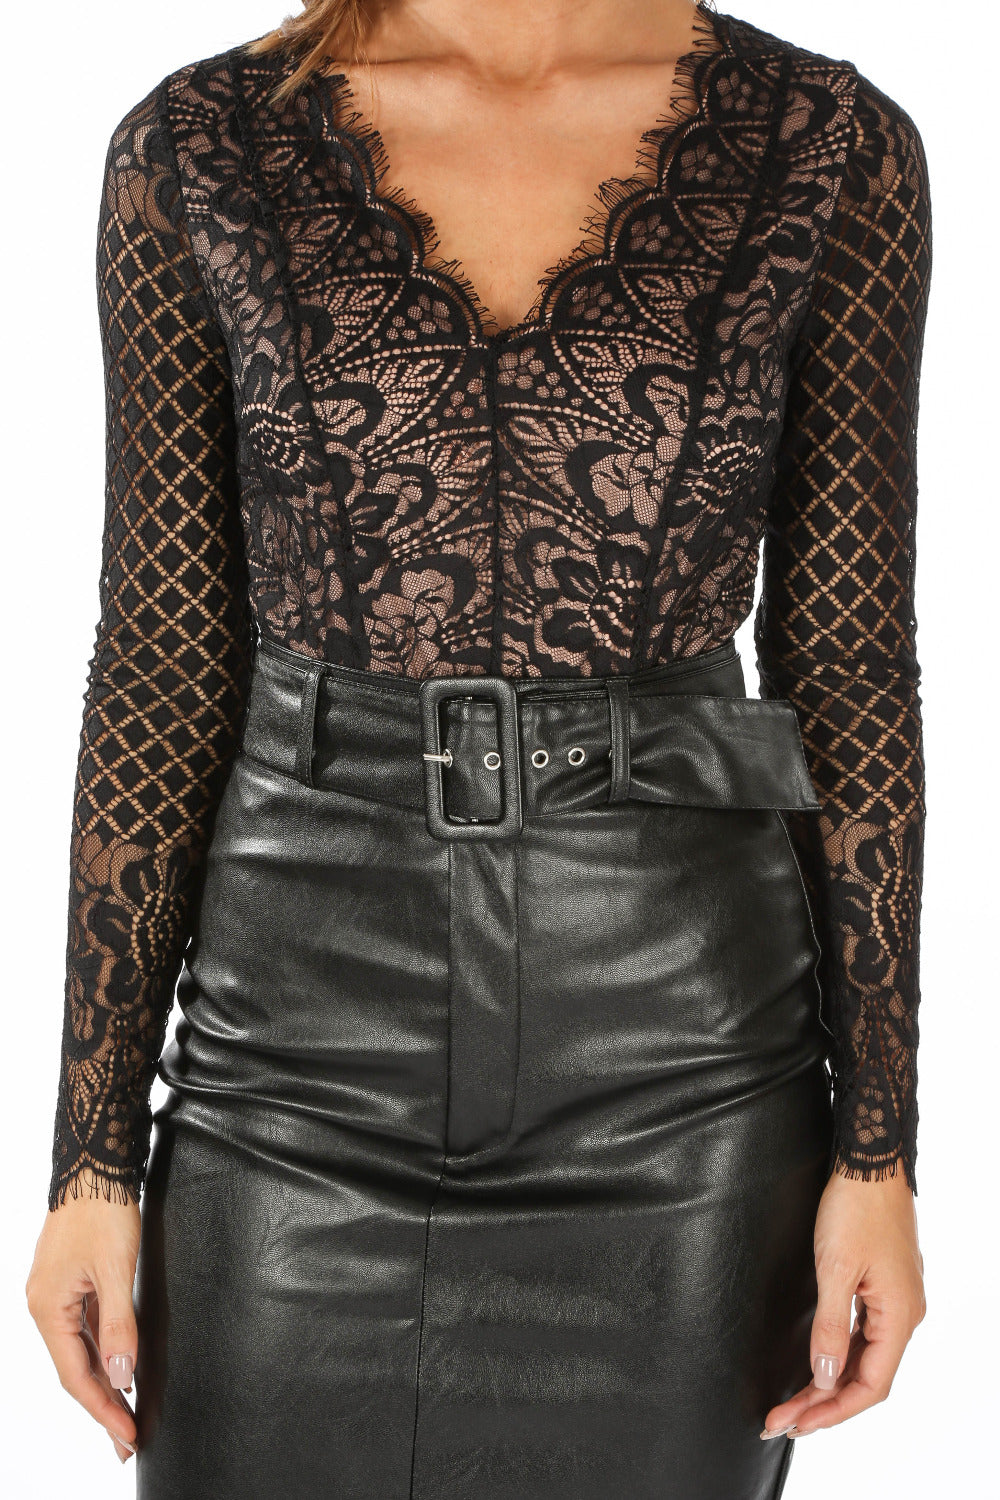 Long Sleeve Contrast Lace Bodysuit In Black